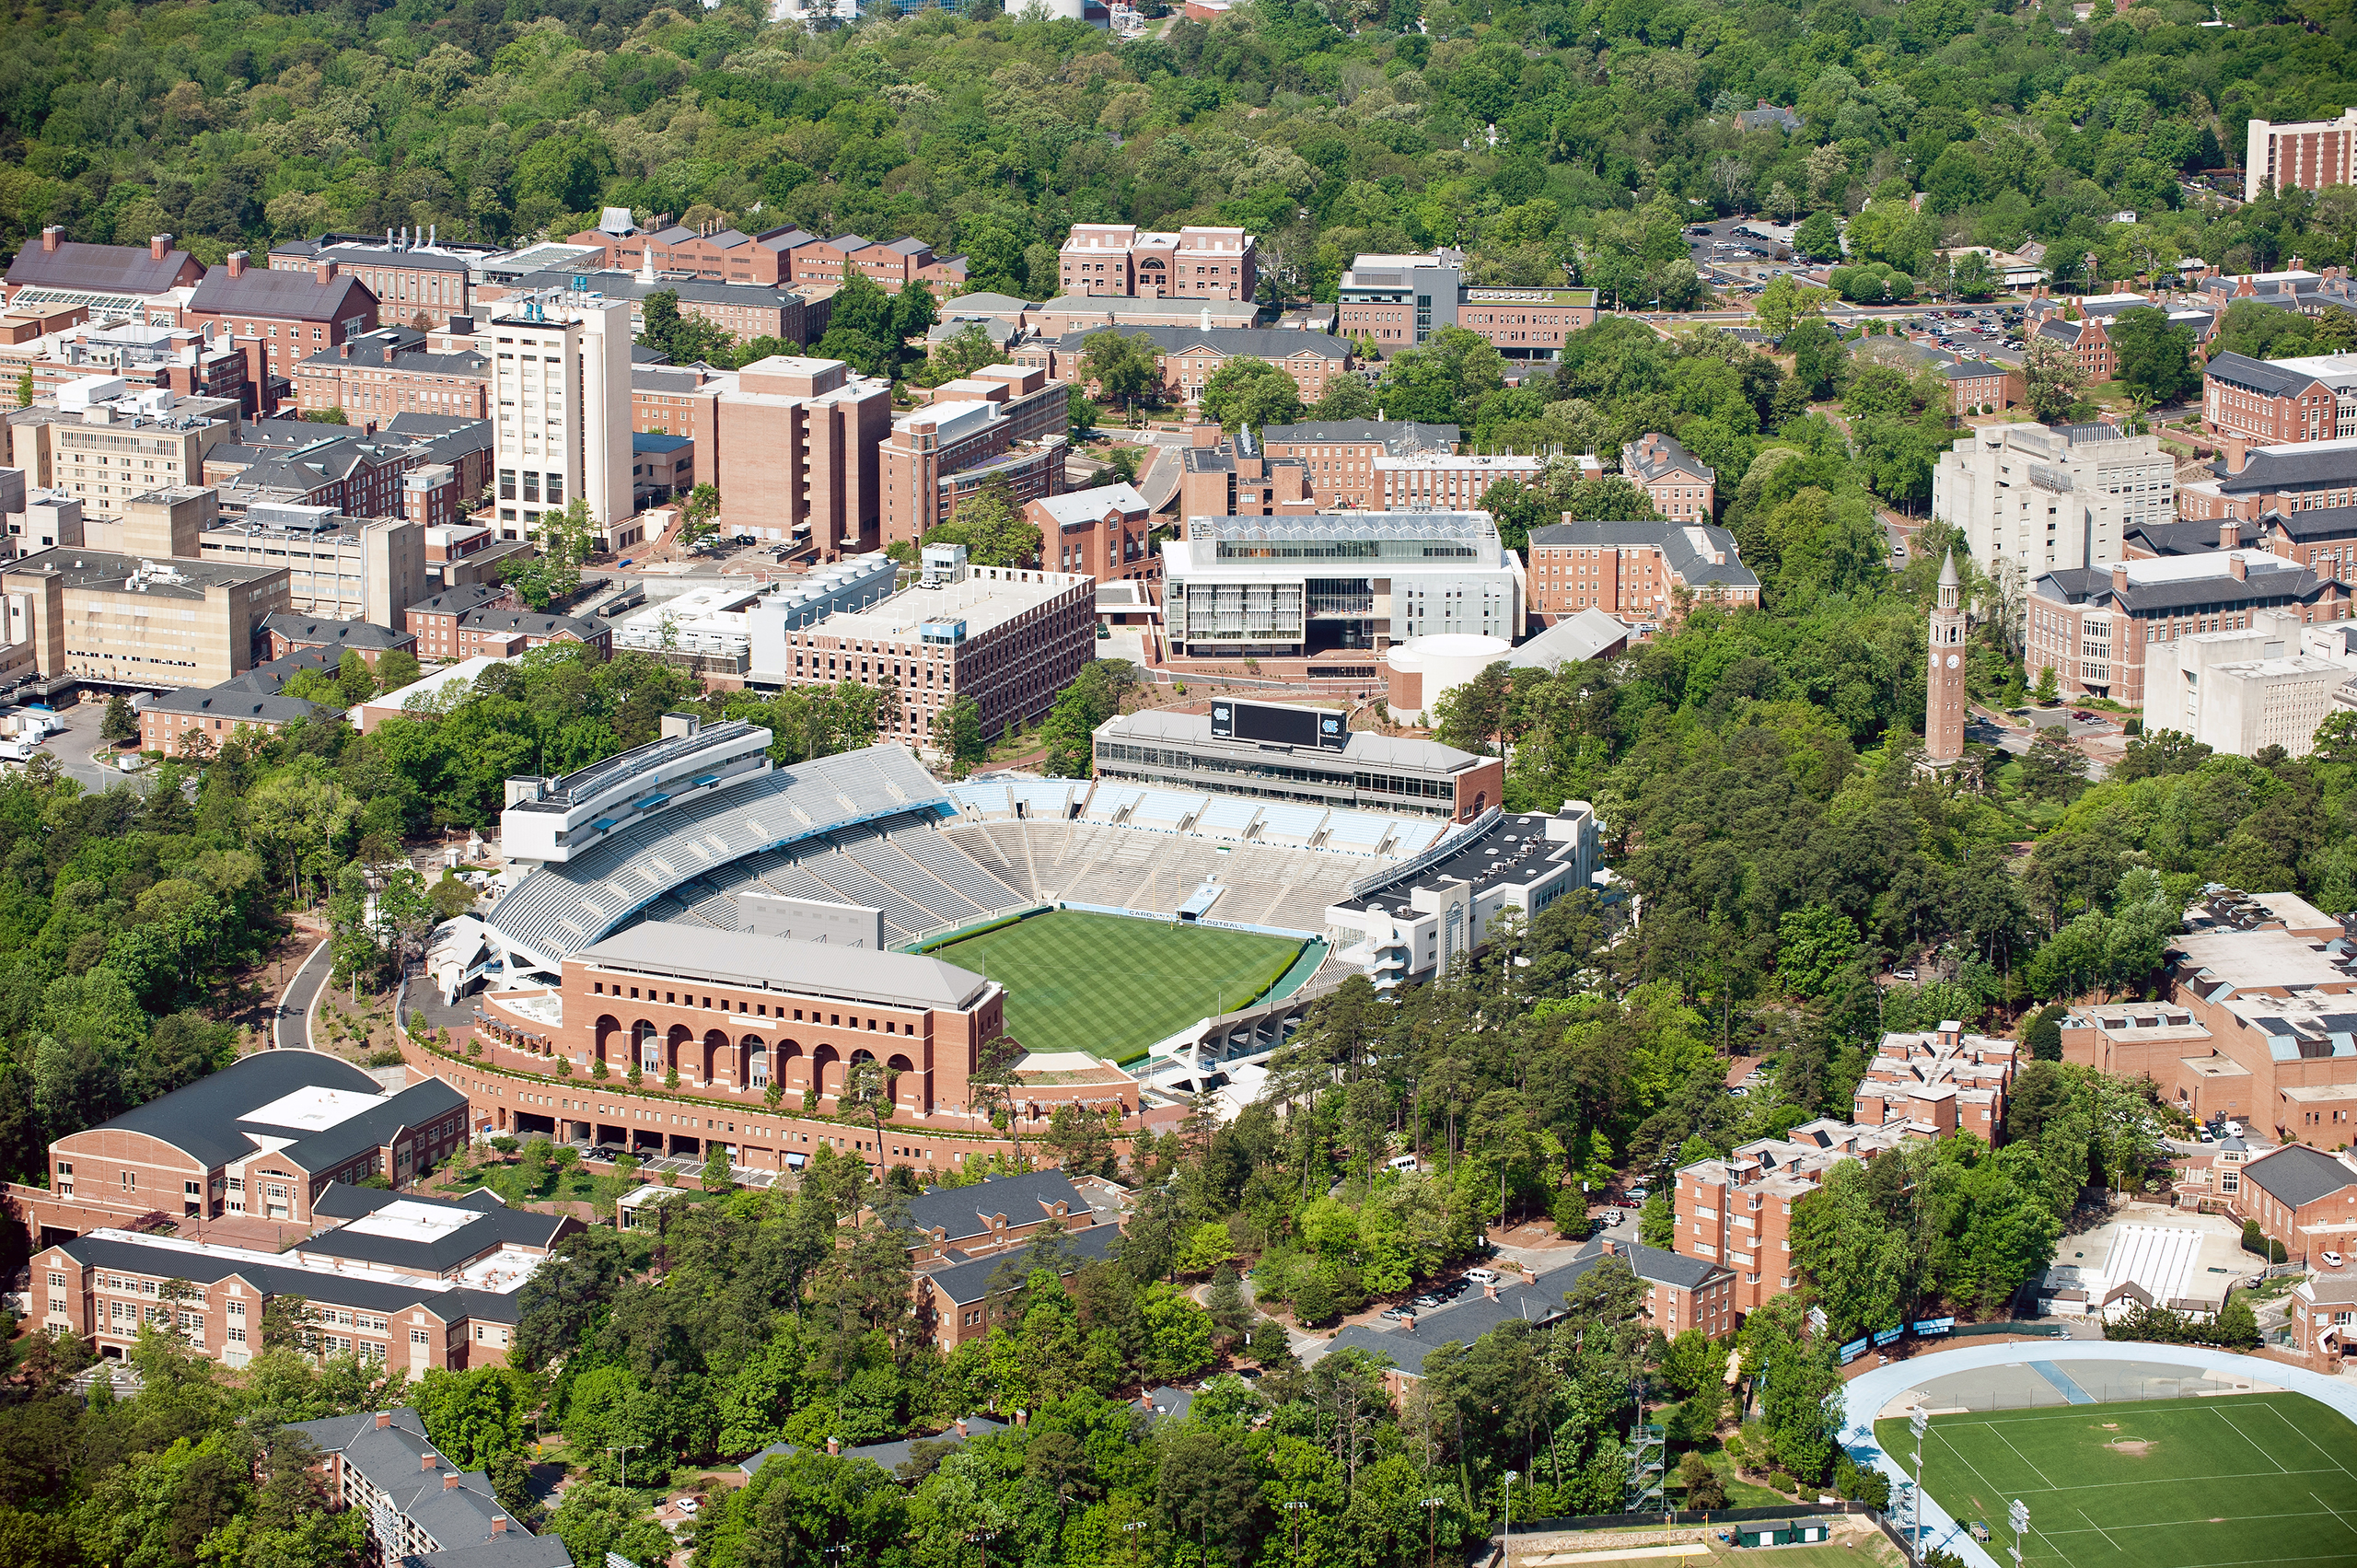 An aerial view of the University of North Carolina campus in Chapel Hill, North Carolina on April 21, 2013.